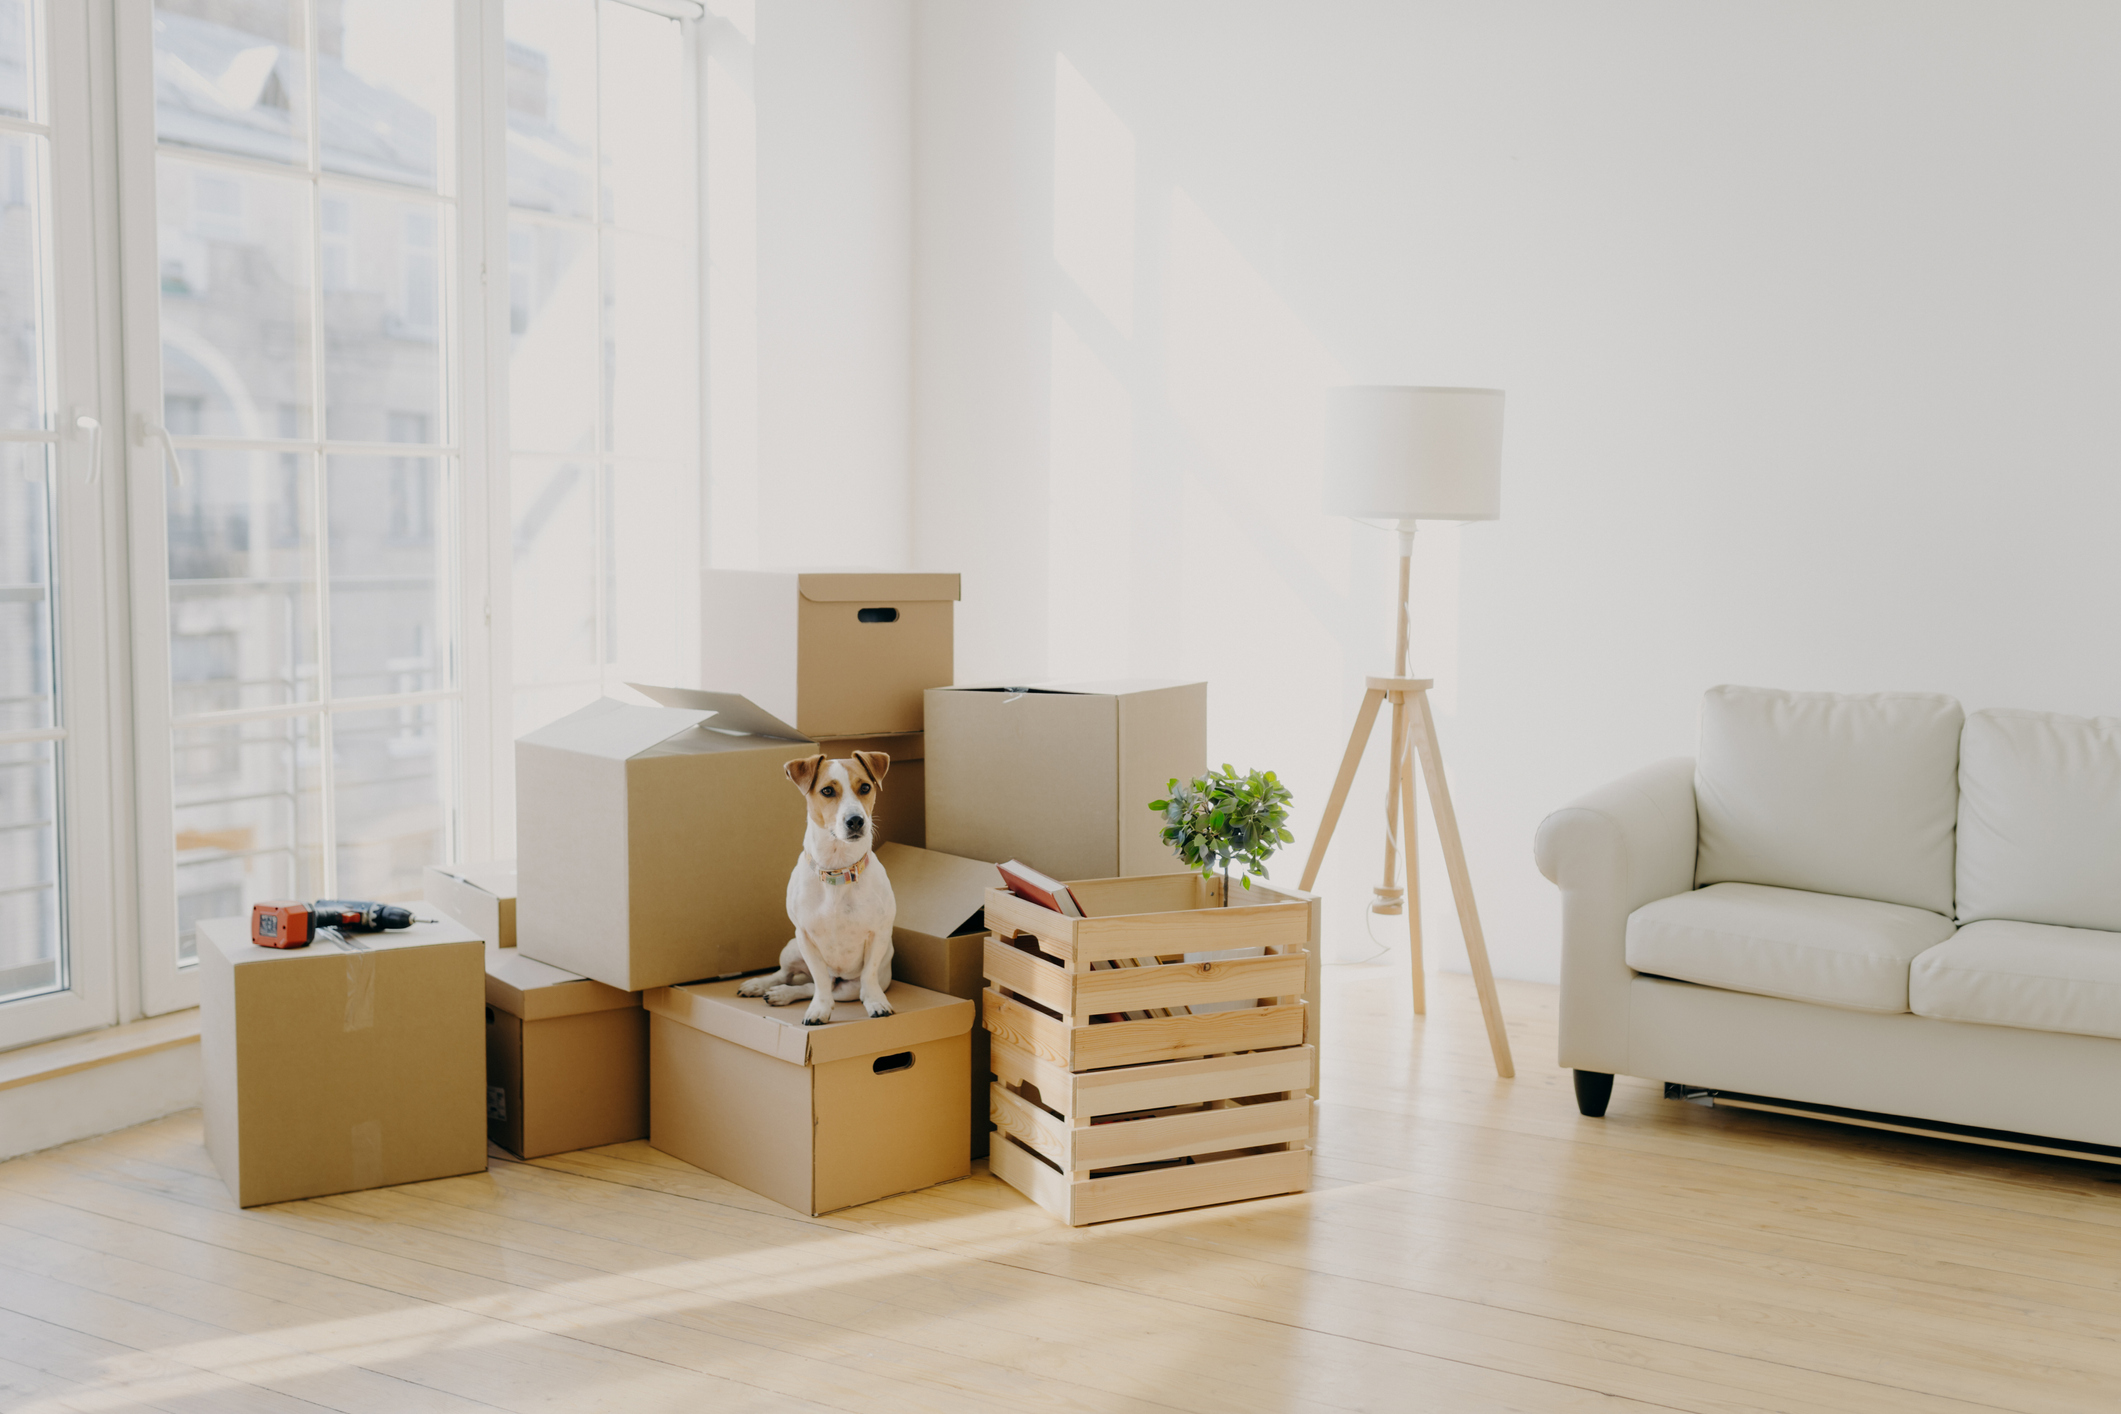 A Jack Russel terrier sits on moving boxes in a large white living room